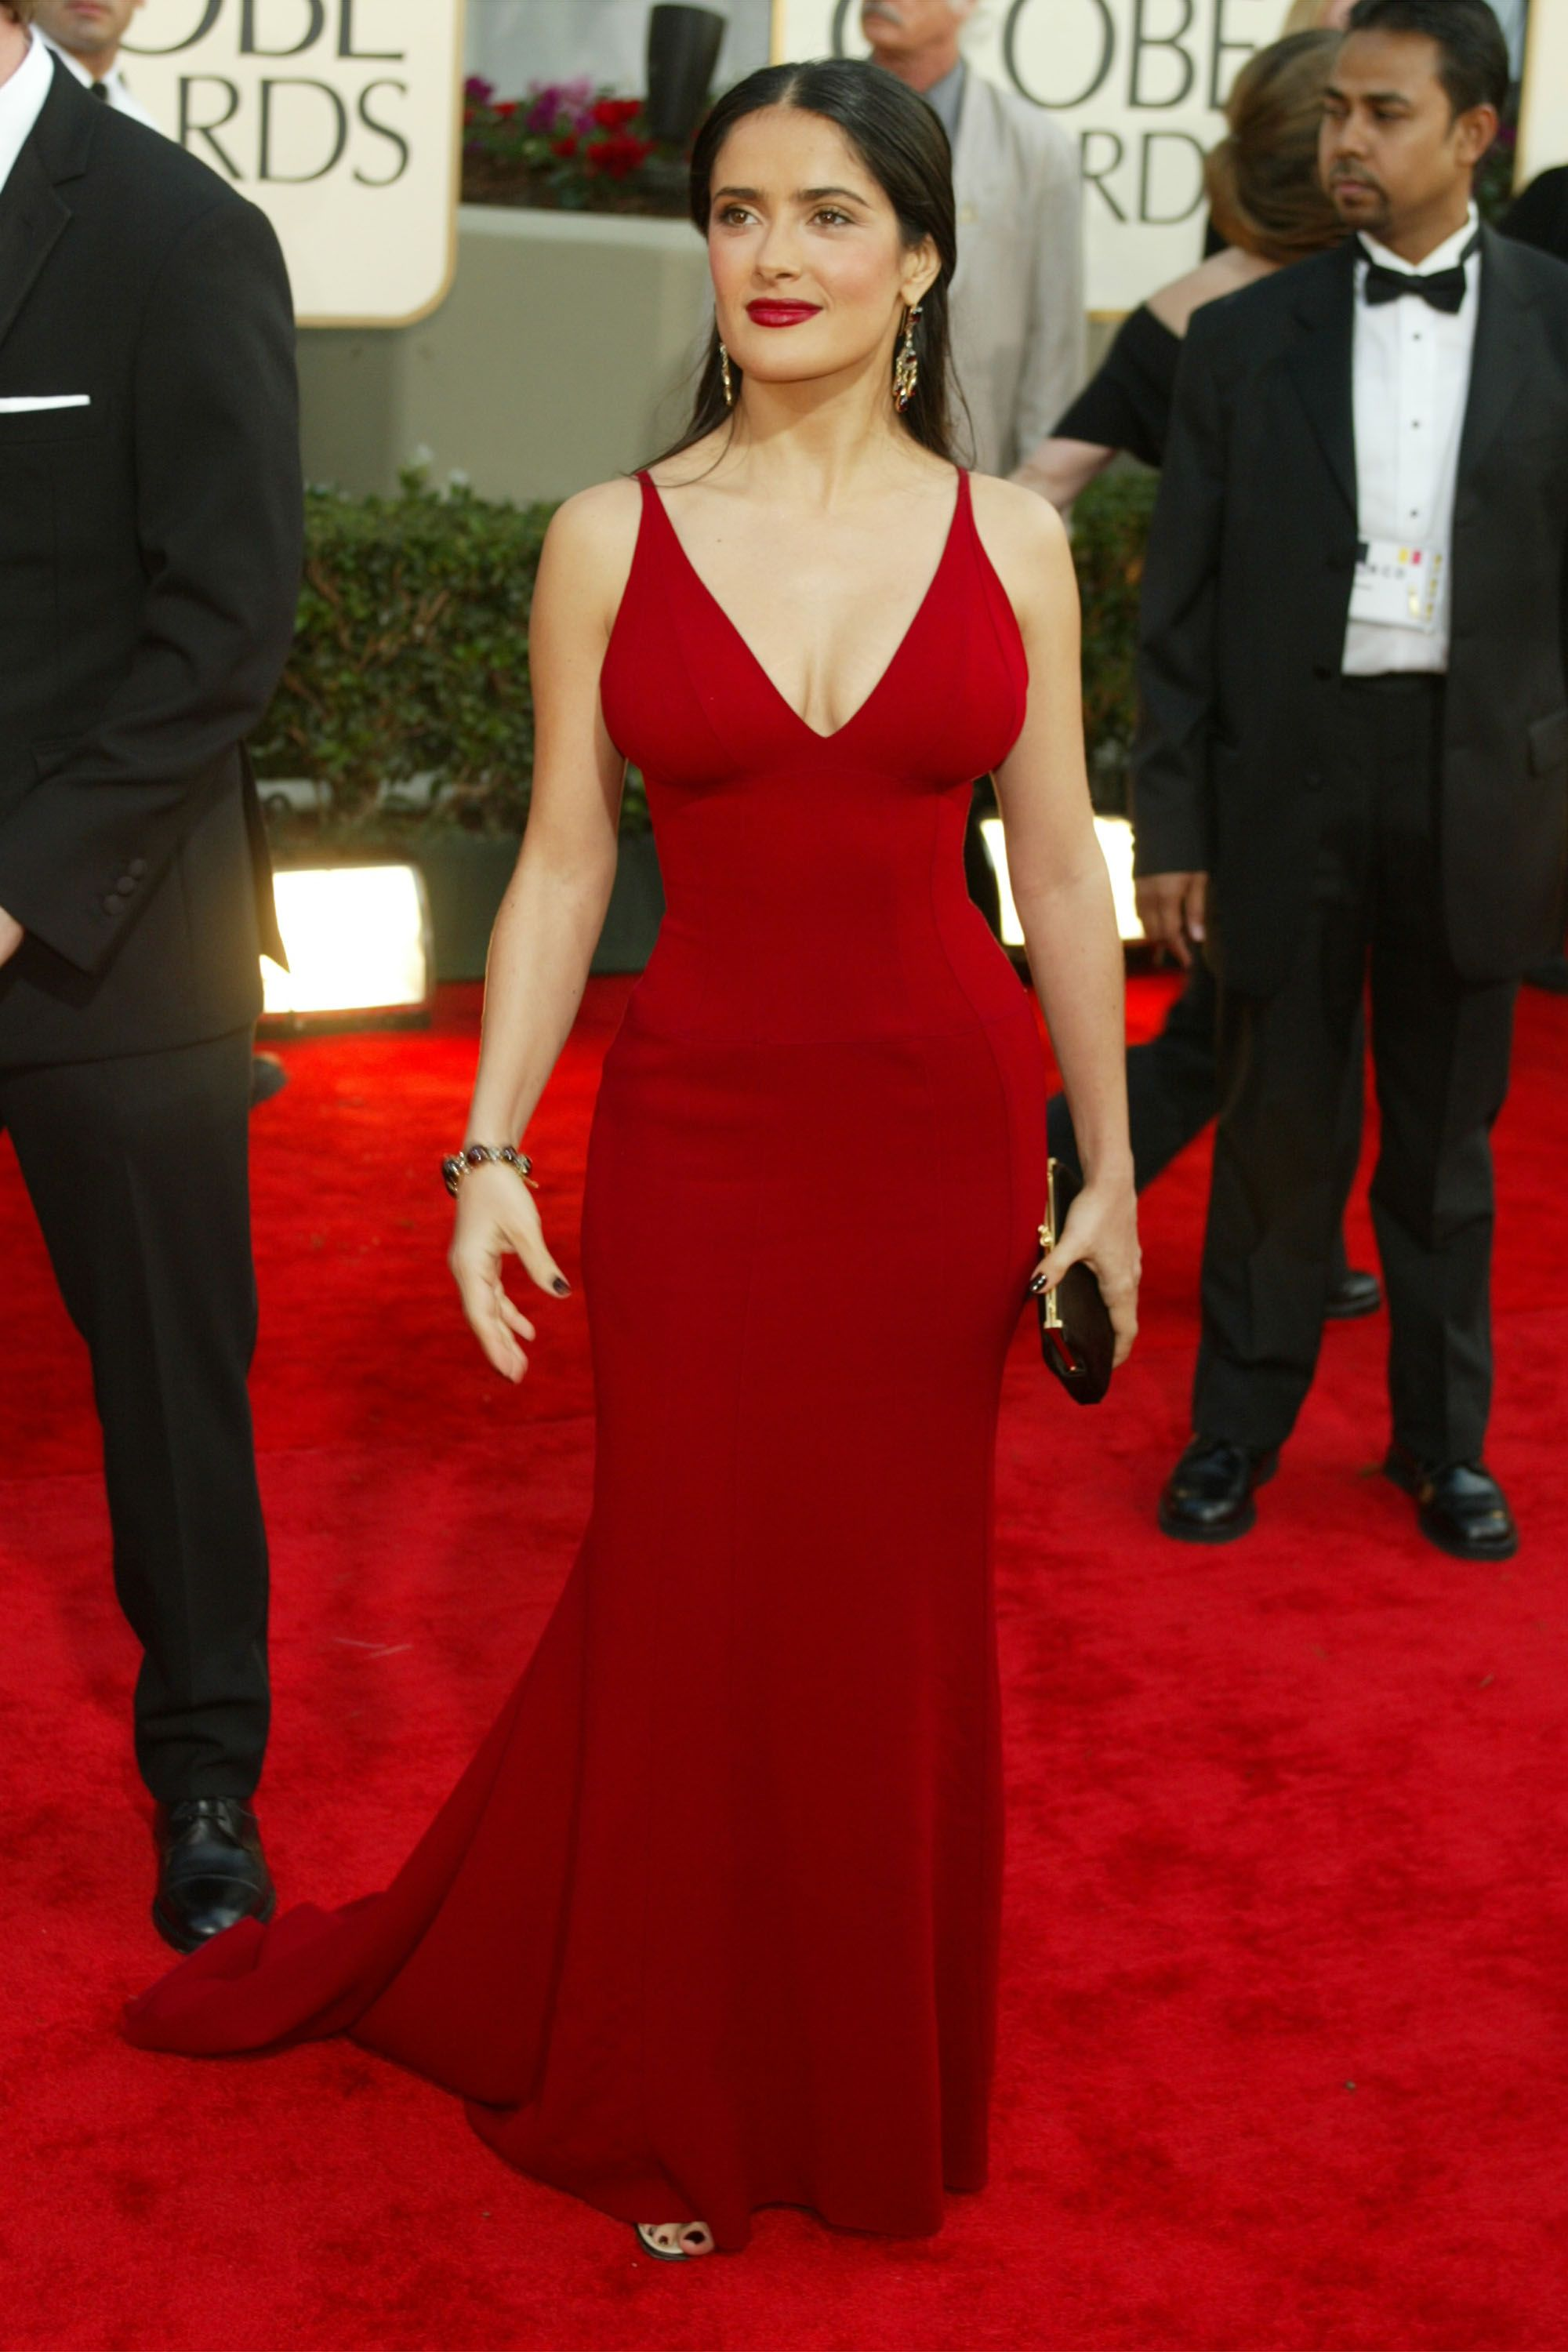 <p><strong>Who: </strong>Salma Hayek</p><p><strong>What: </strong>Narciso Rodriguez</p><p><strong>When: </strong>2003</p><p><strong>Why: </strong>A)<strong> </strong>Girl, look at that body. B) This is why more people should wear Narciso—he won't turn you into Salma Hayek, but he's going to make you *look* like the Salma Hayek-iest you possible. </p>